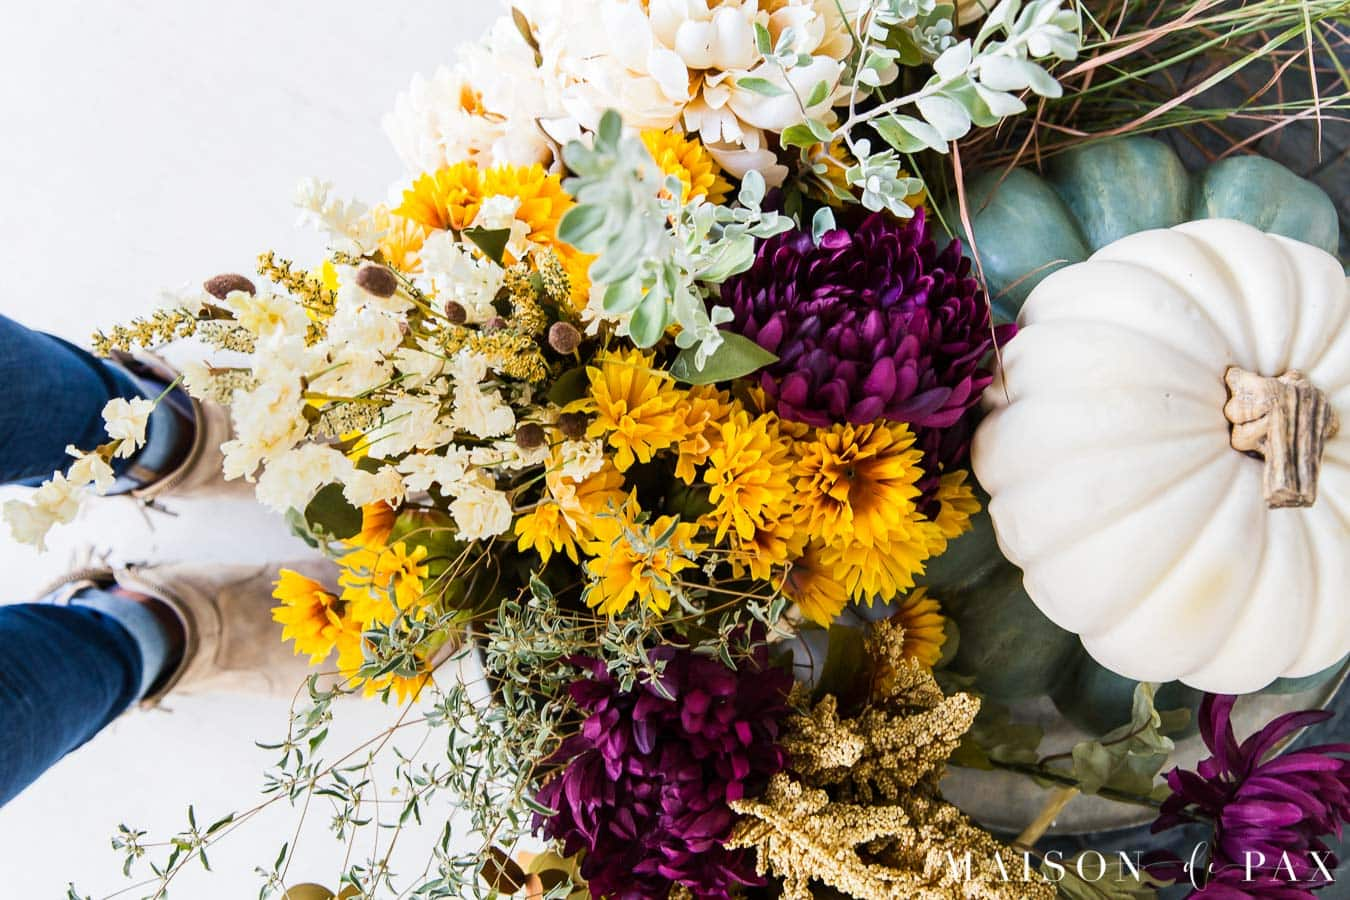 purple and yellow and green fall floral planters in galvanized tub | Maison de Pax